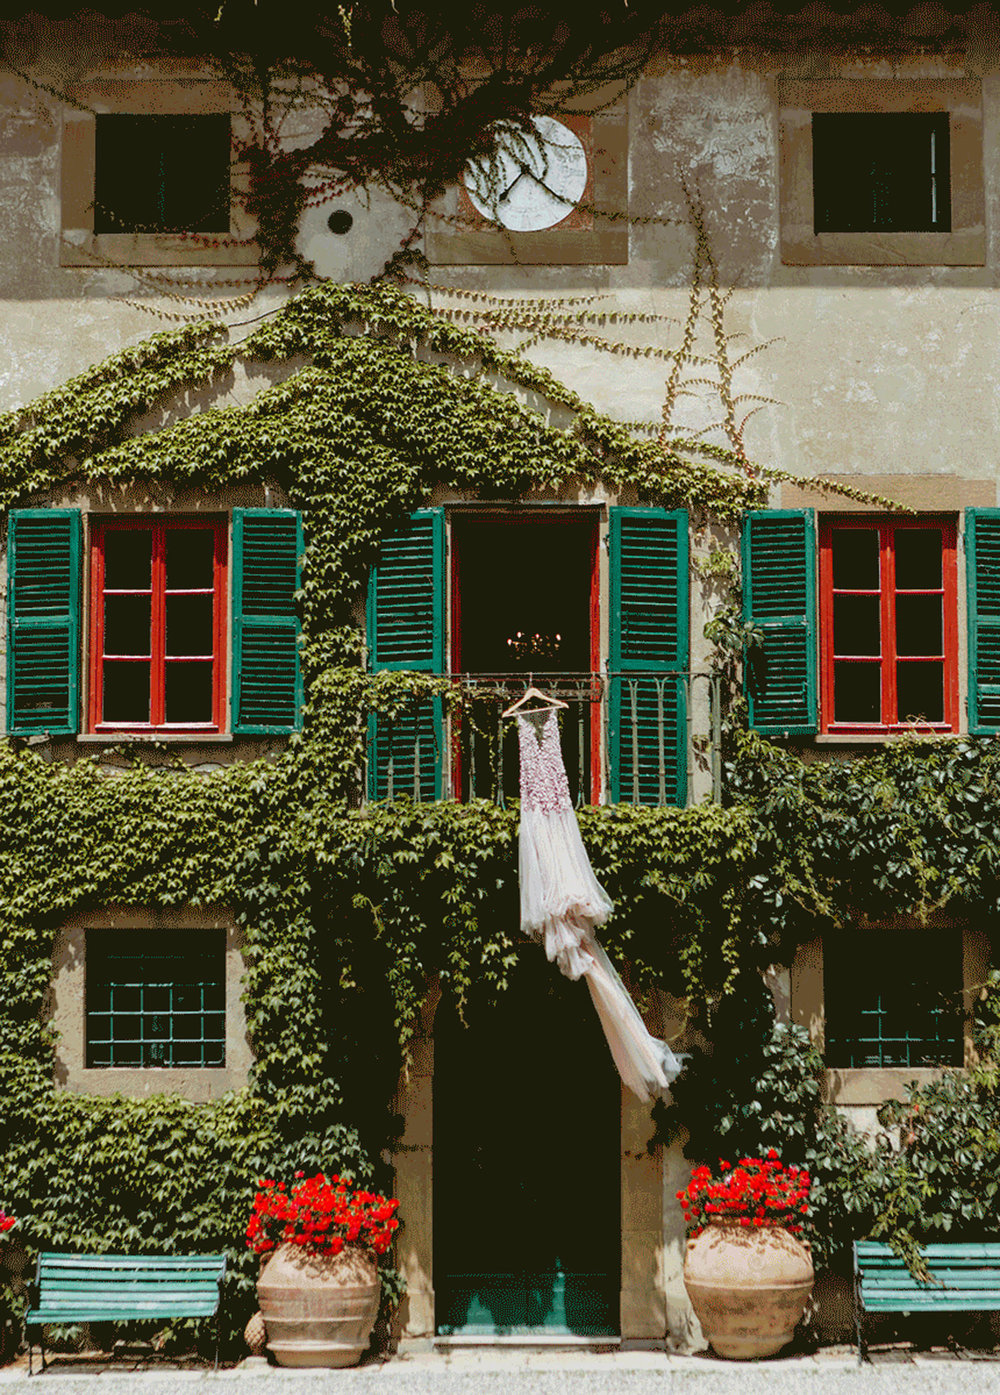 WEDDING & ELOPEMENT PACKAGE No2 - 2800 euro- all day cover 8h-12h- couple mini-shoot- 800-1000 fully edited photos- password protected gallery online- emotional slideshow with music- special box with USB and 30 prints